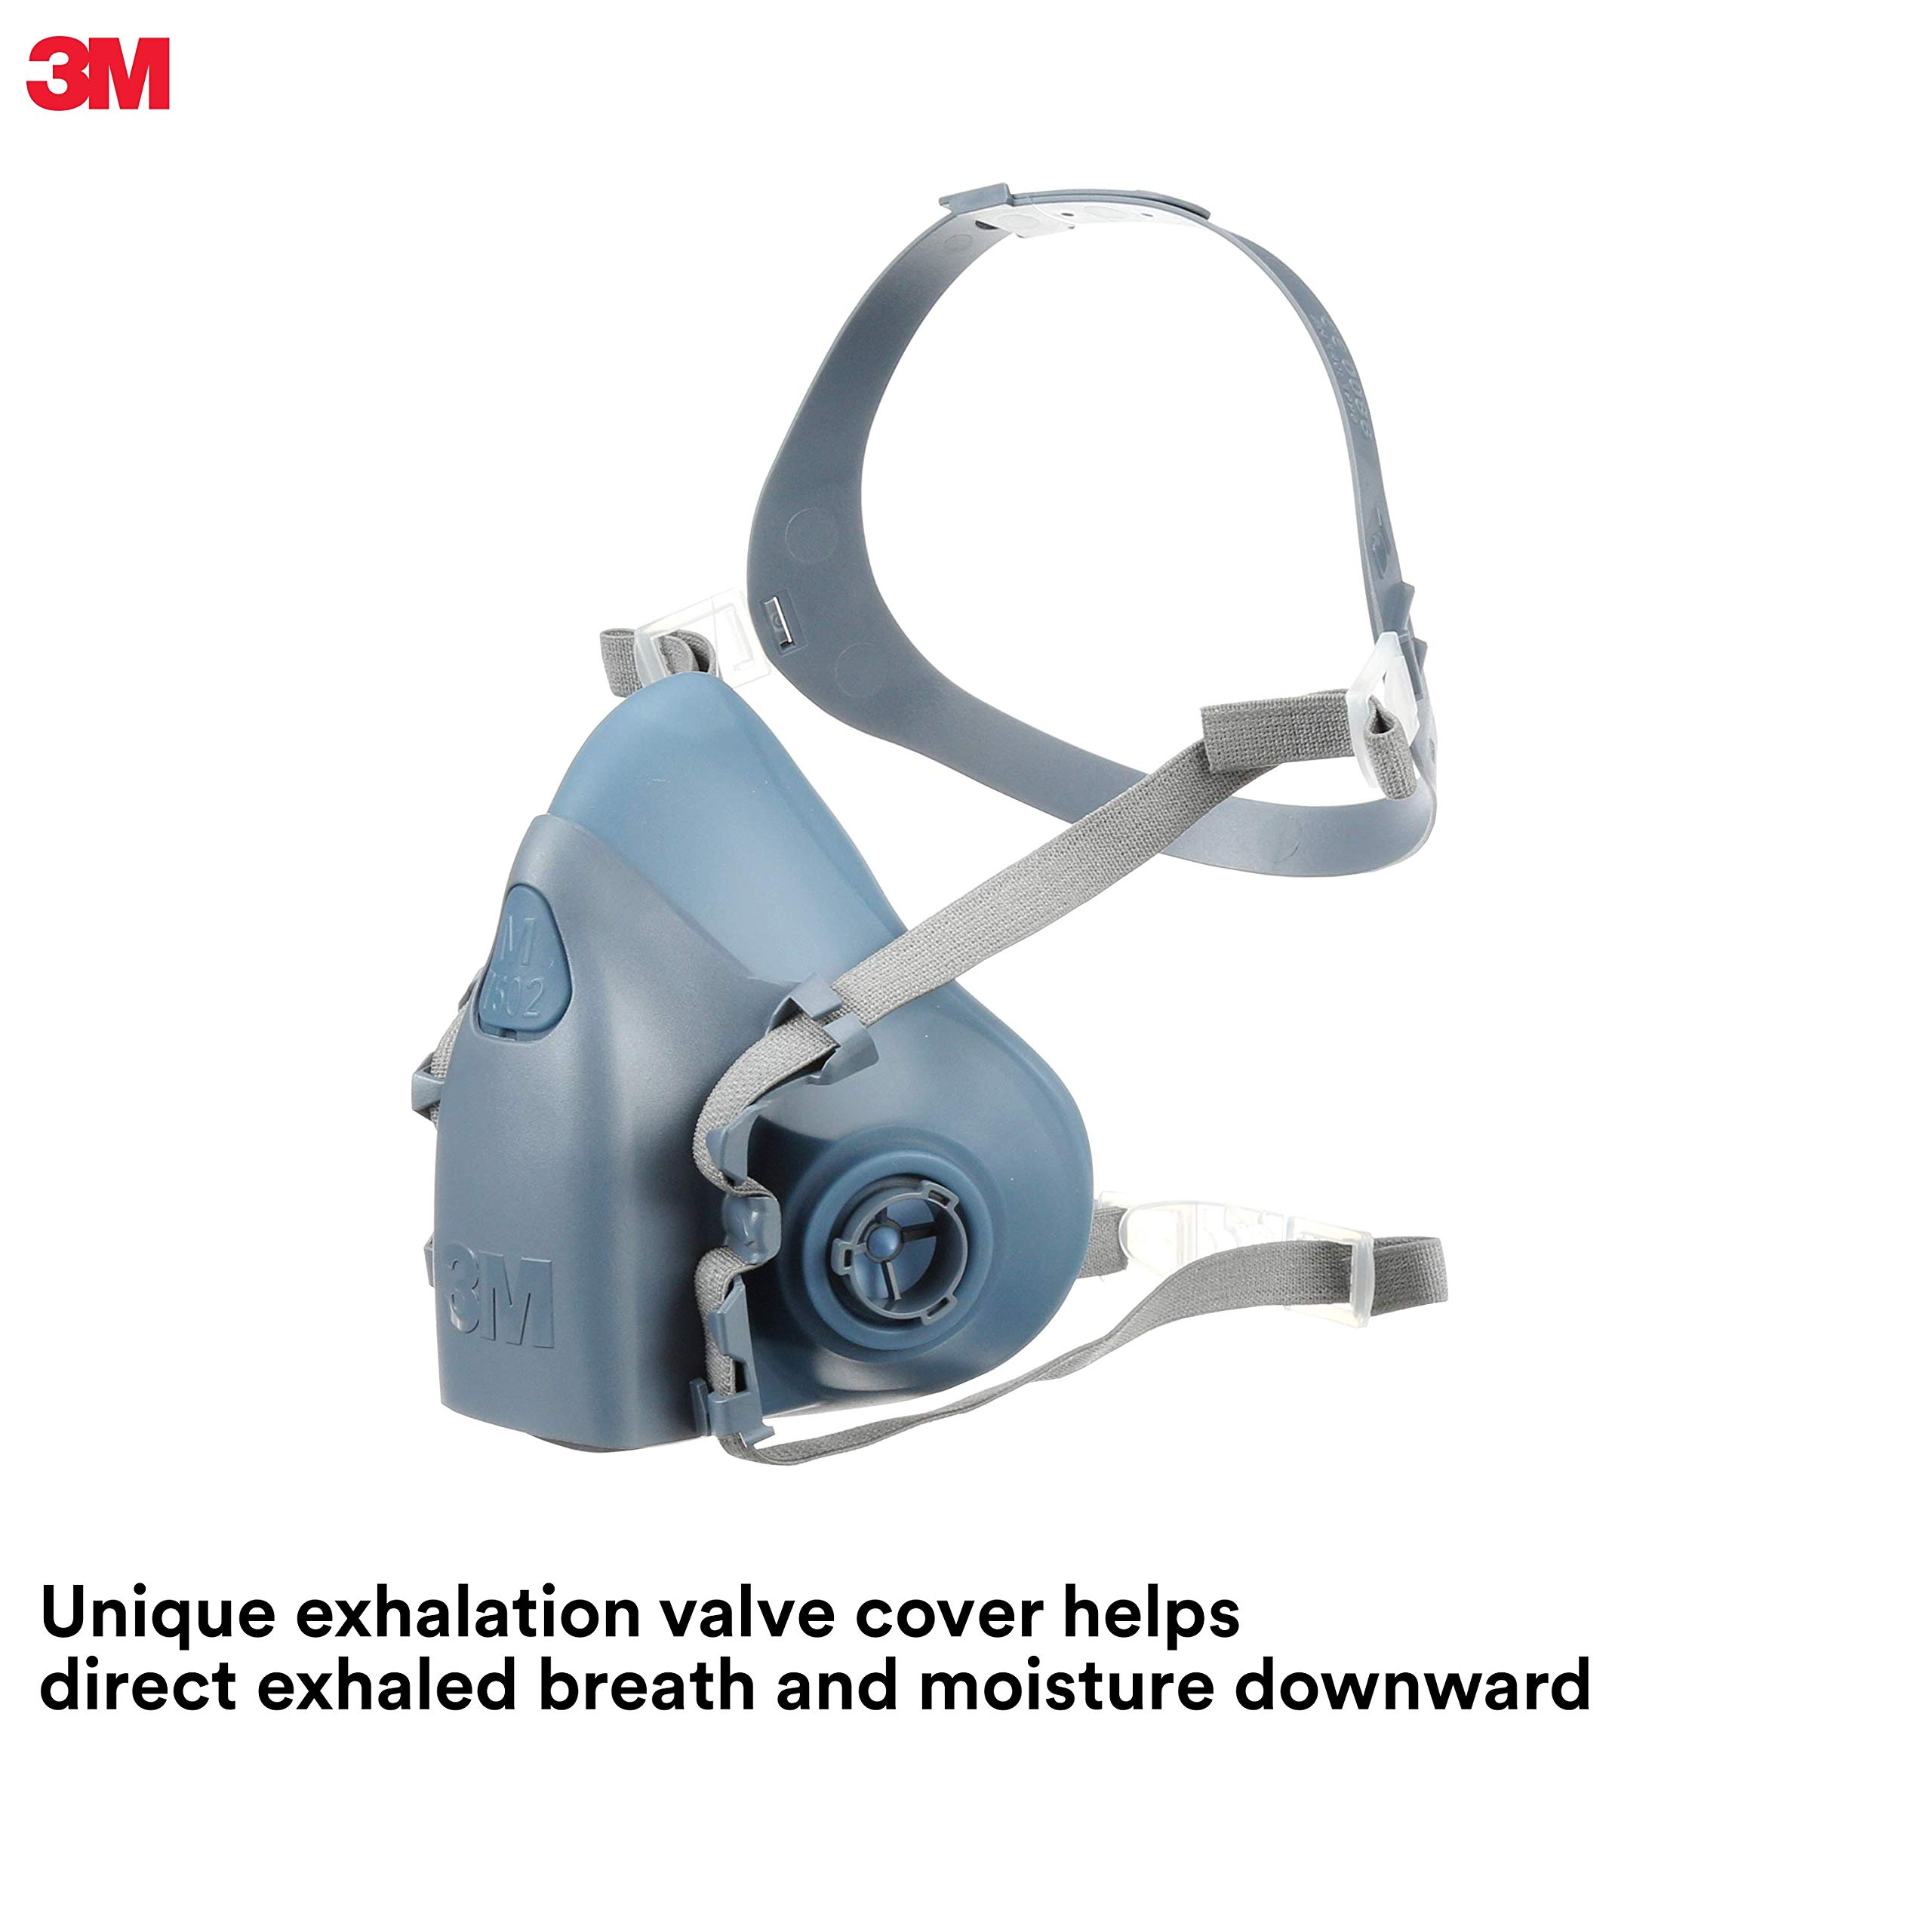 3M Reusable Respirator, Half Face Piece 7502, Use With Bayonet Cartridges/Filters (not included) for Gases, Vapors, Dust, Medium Size